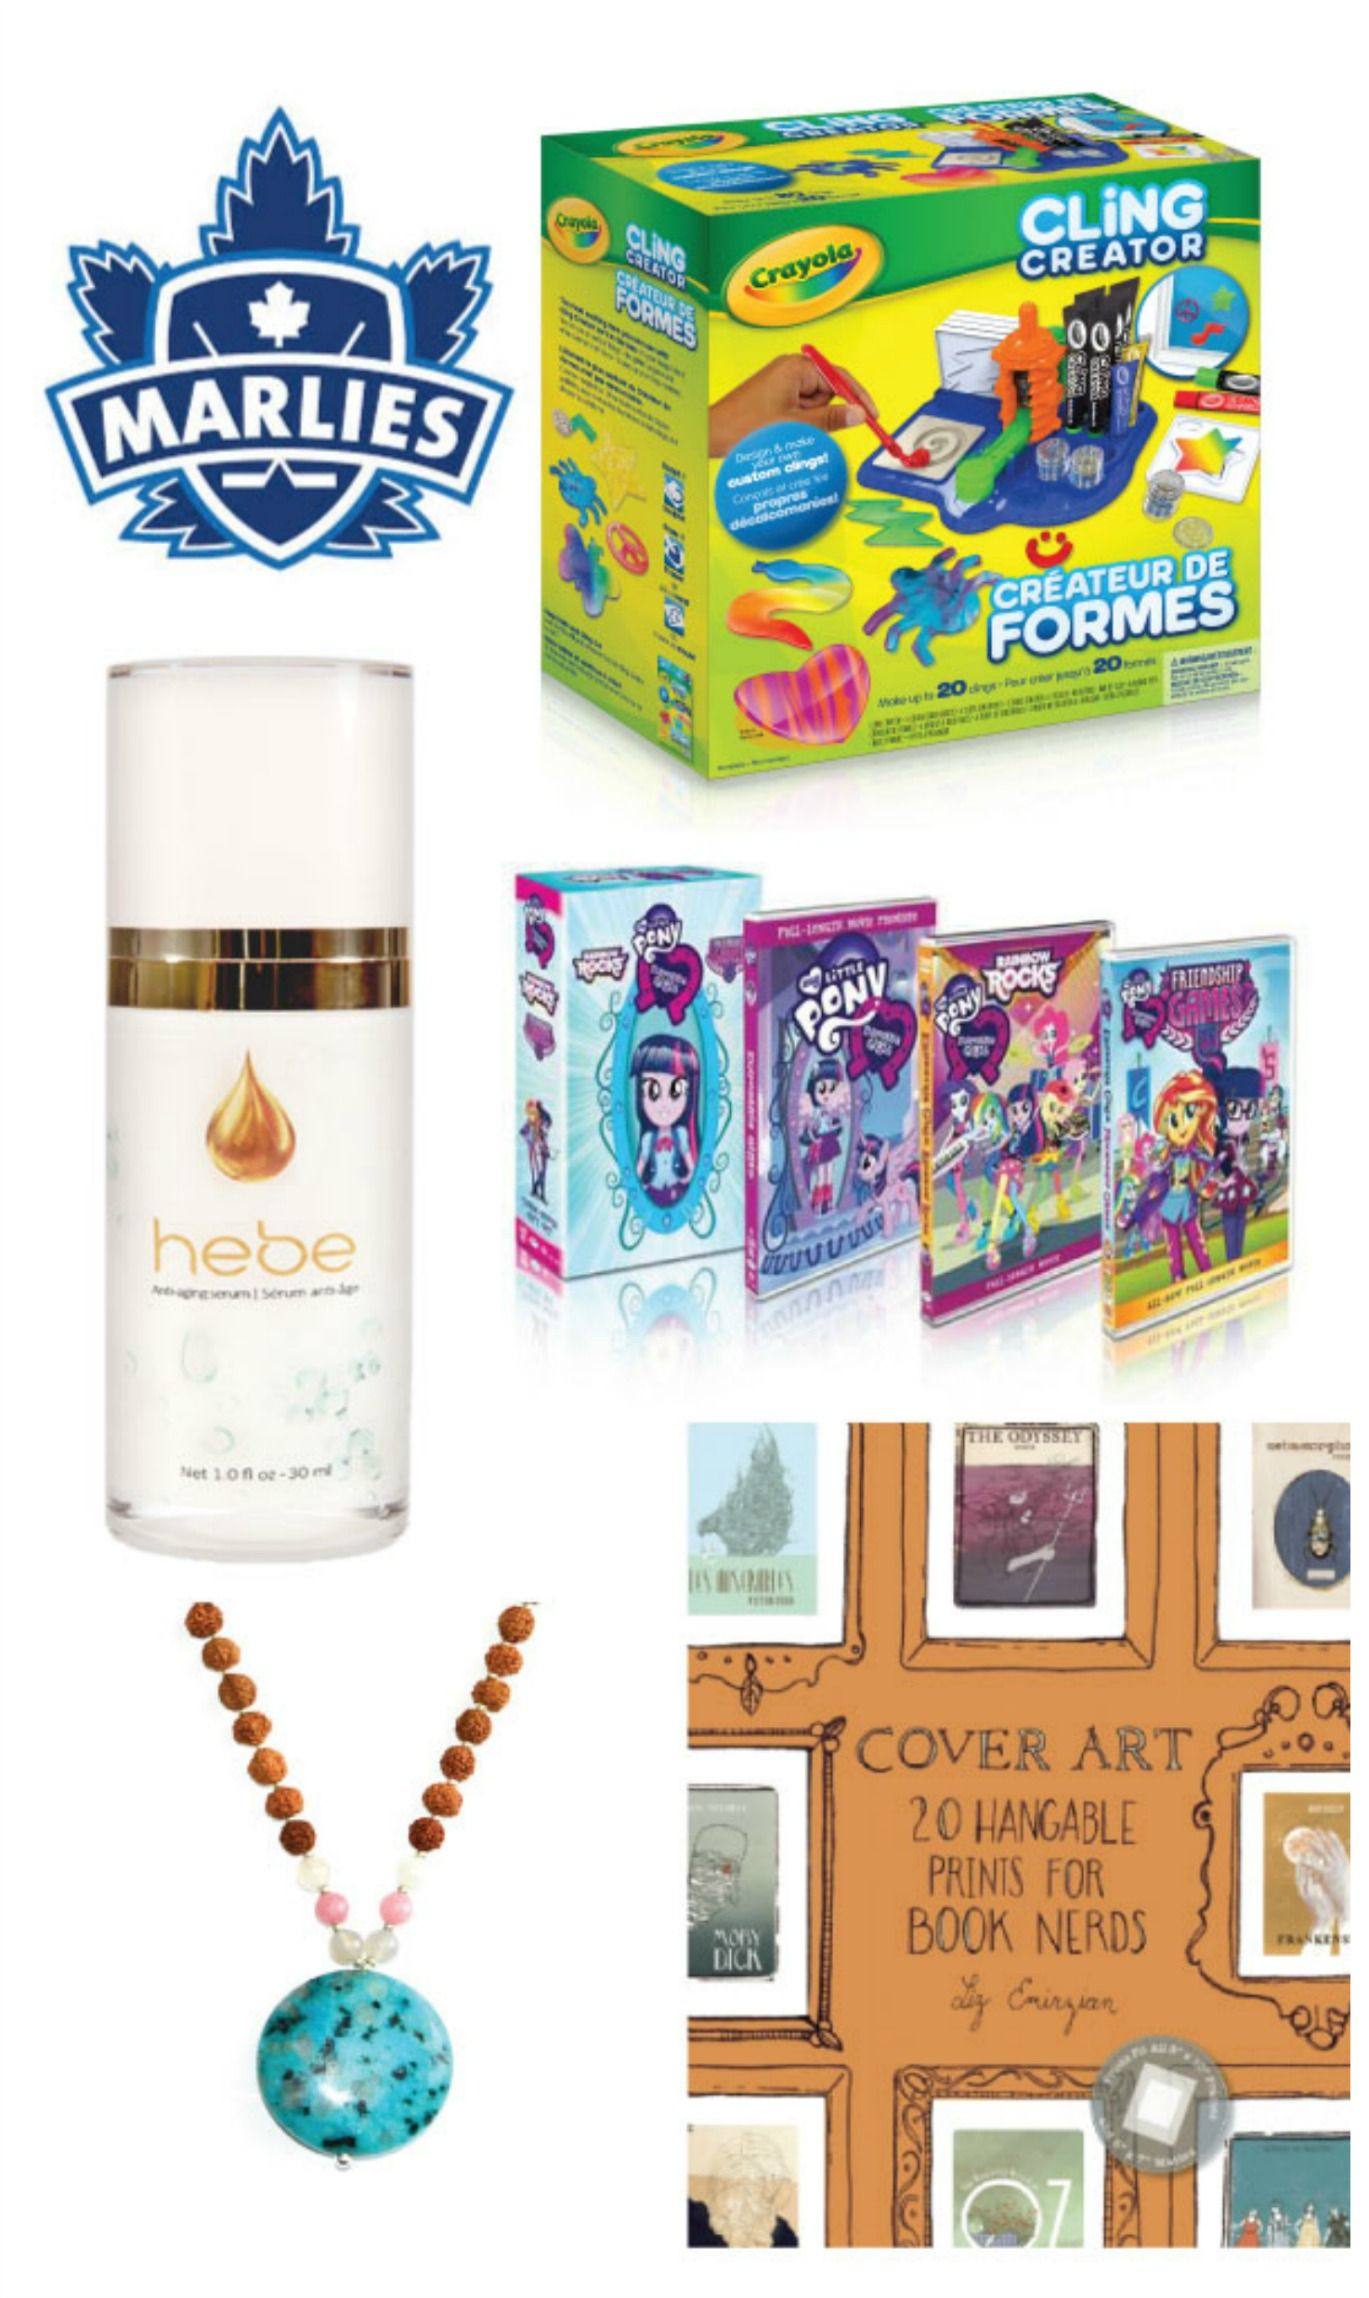 christmas gift ideas for kids and adults crayola cling creator marlies tickets equestria